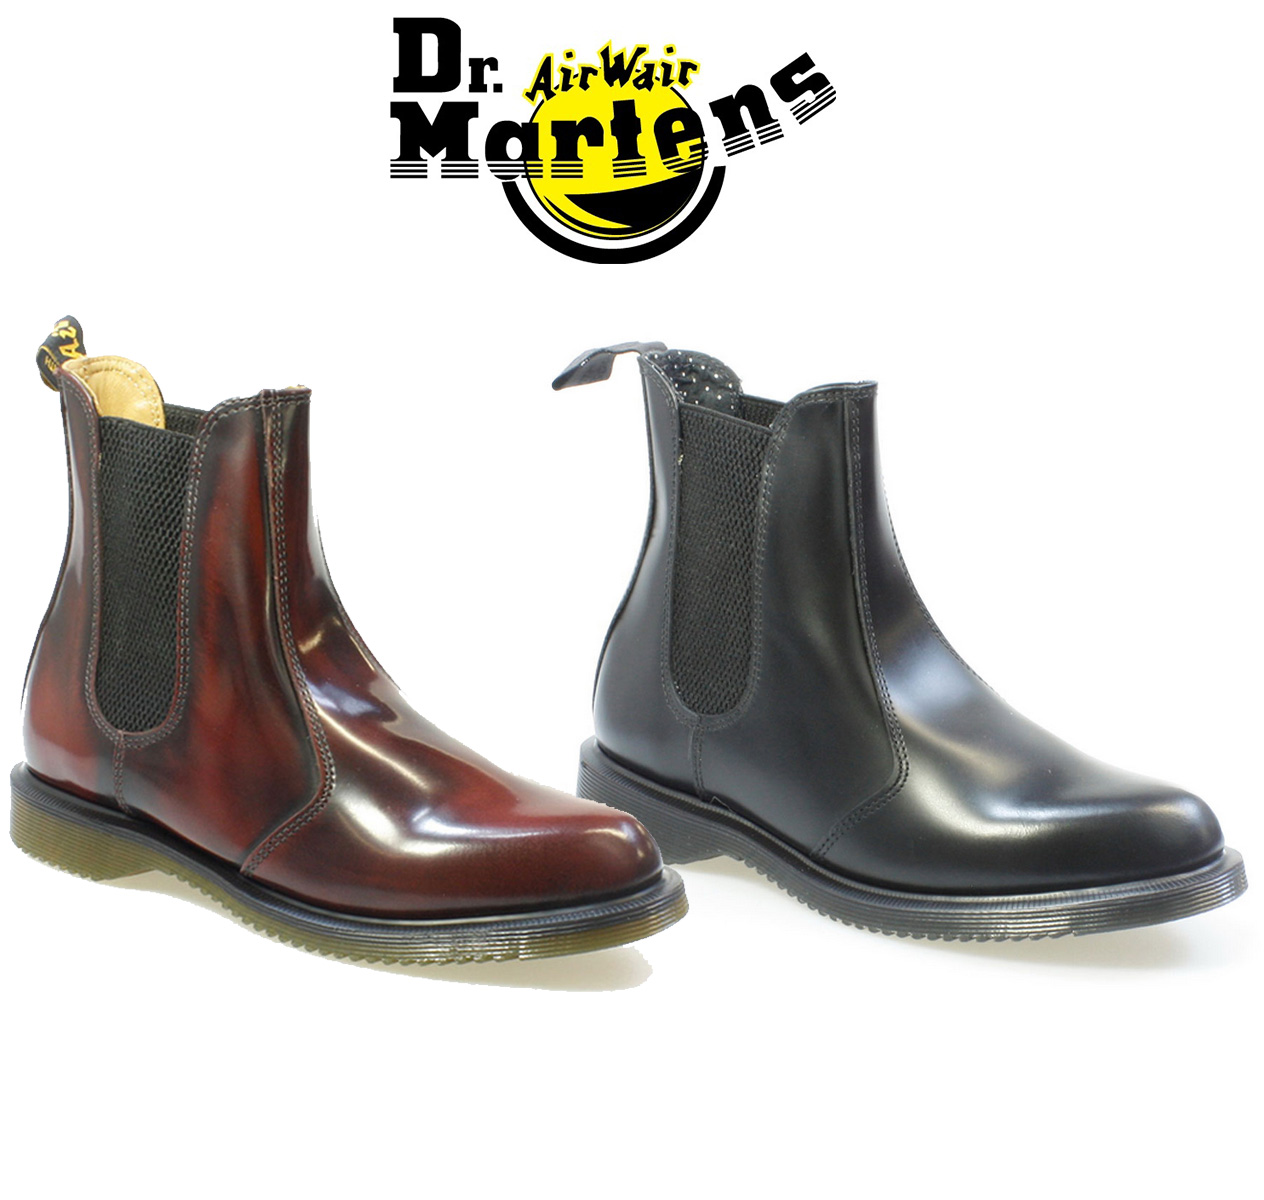 c89d61ccdf0 Details about Dr. Martens Womens Flora Chelsea Boots, Black or Burgundy  Red, Leather Shoes